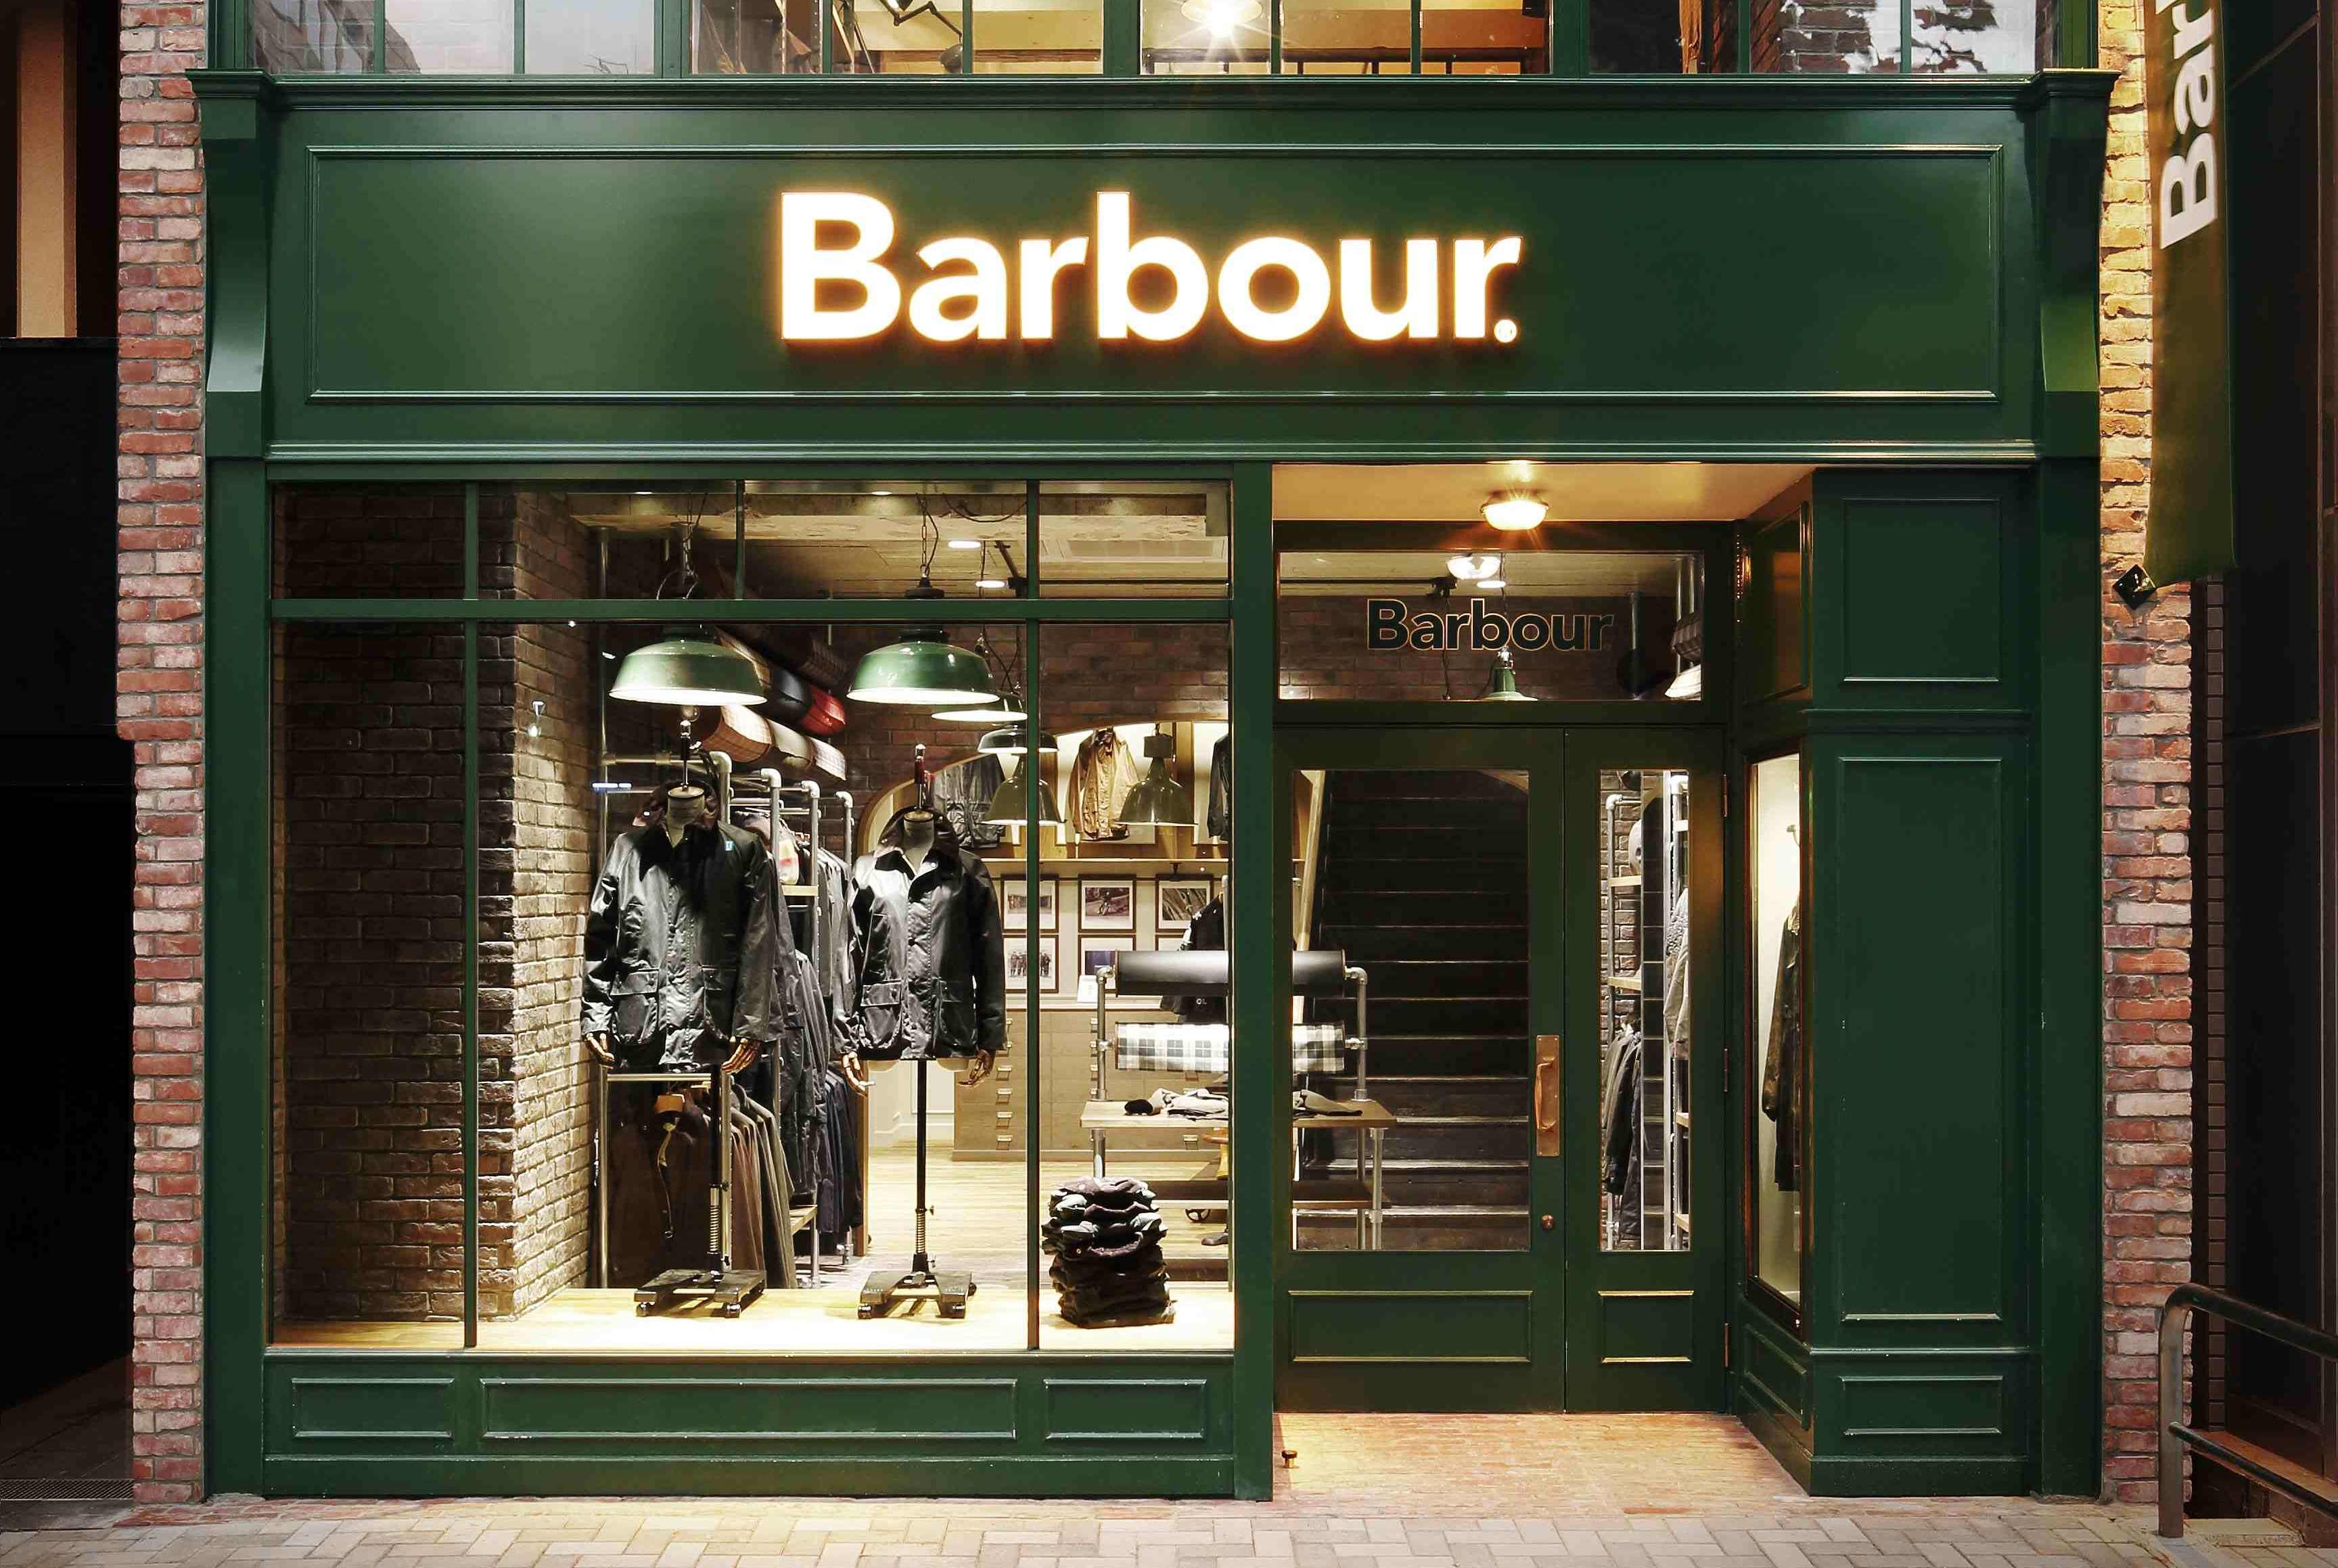 Off67% Barbour Online Shop  Barbour Outlet Barbour Store